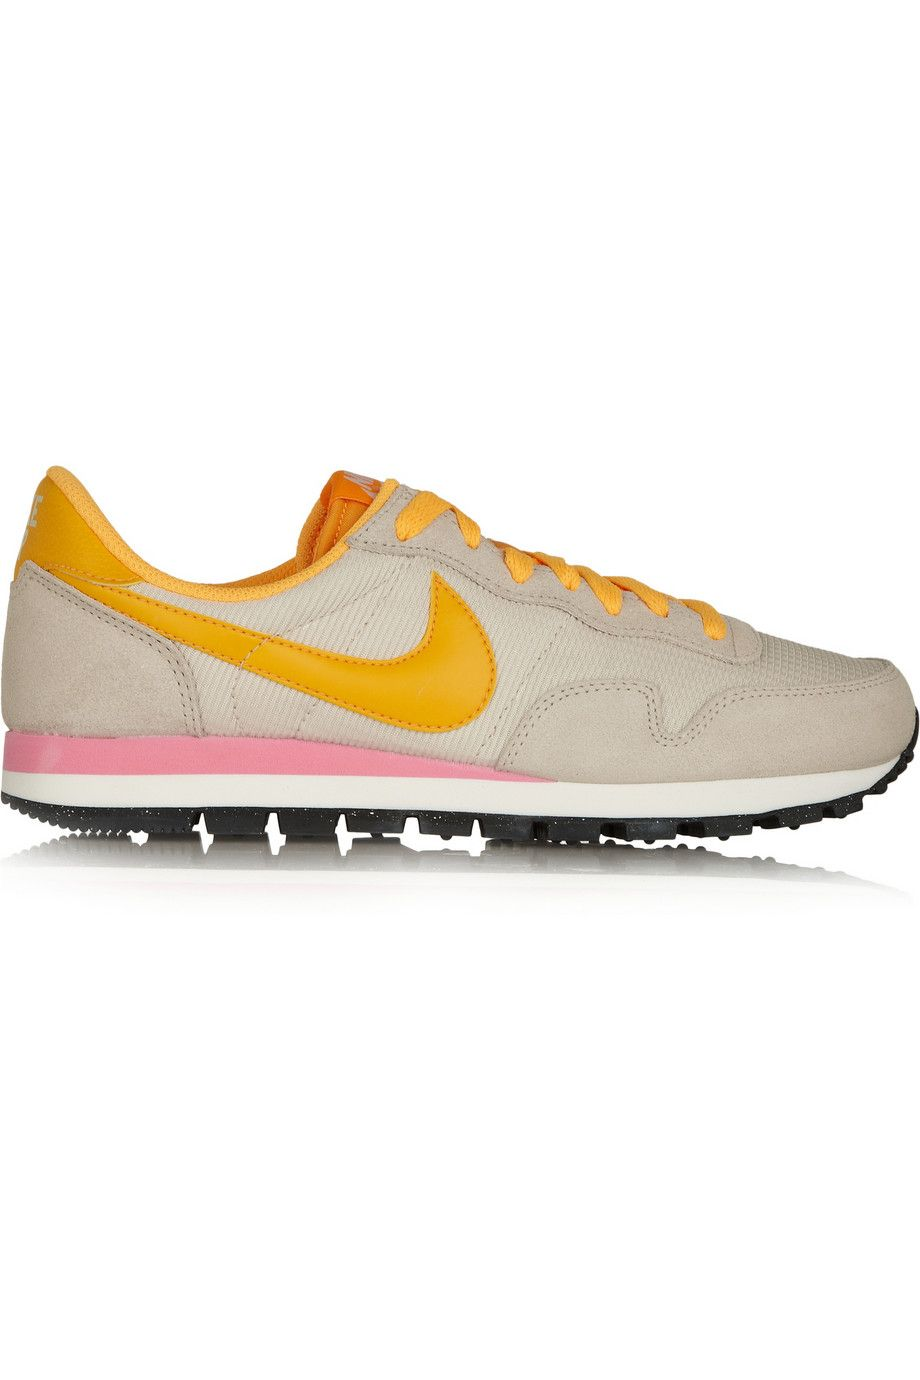 official photos dc19e c7bb3 Nike, Air Pegasus 83 leather, suede and mesh sneakers  beige pink orange